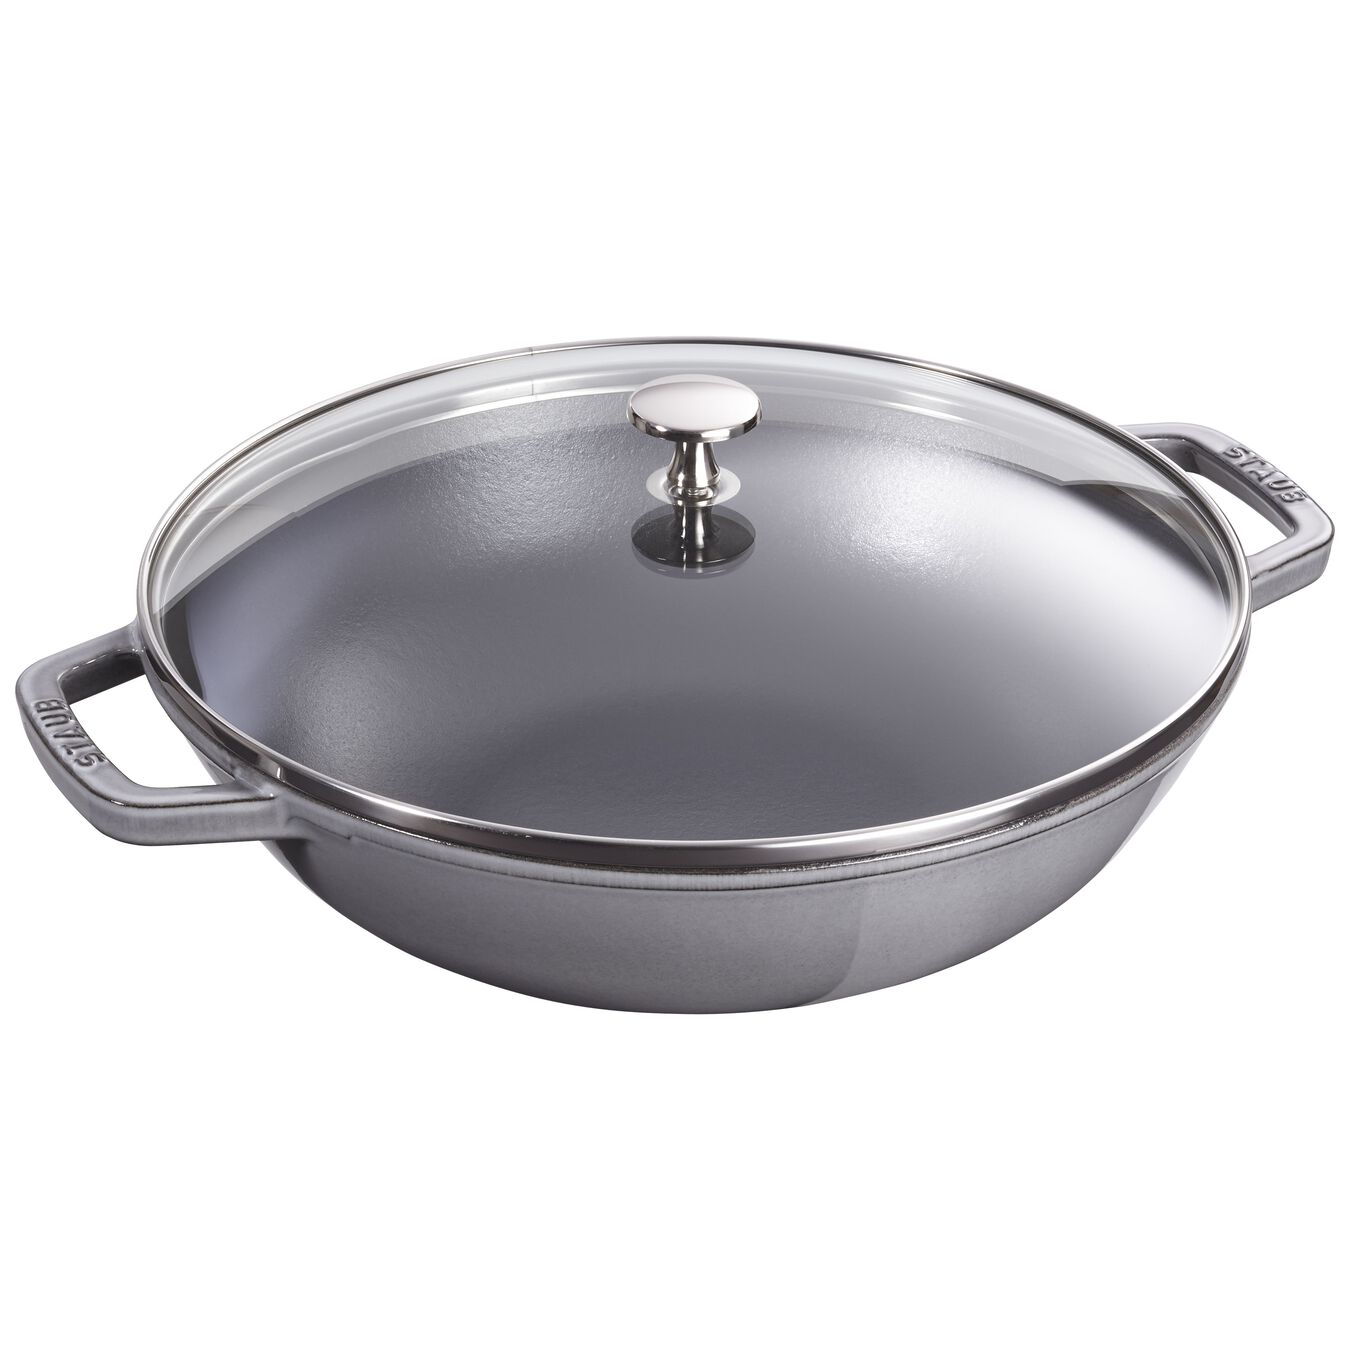 30 cm / 12 inch Wok with glass lid, graphite-grey,,large 1